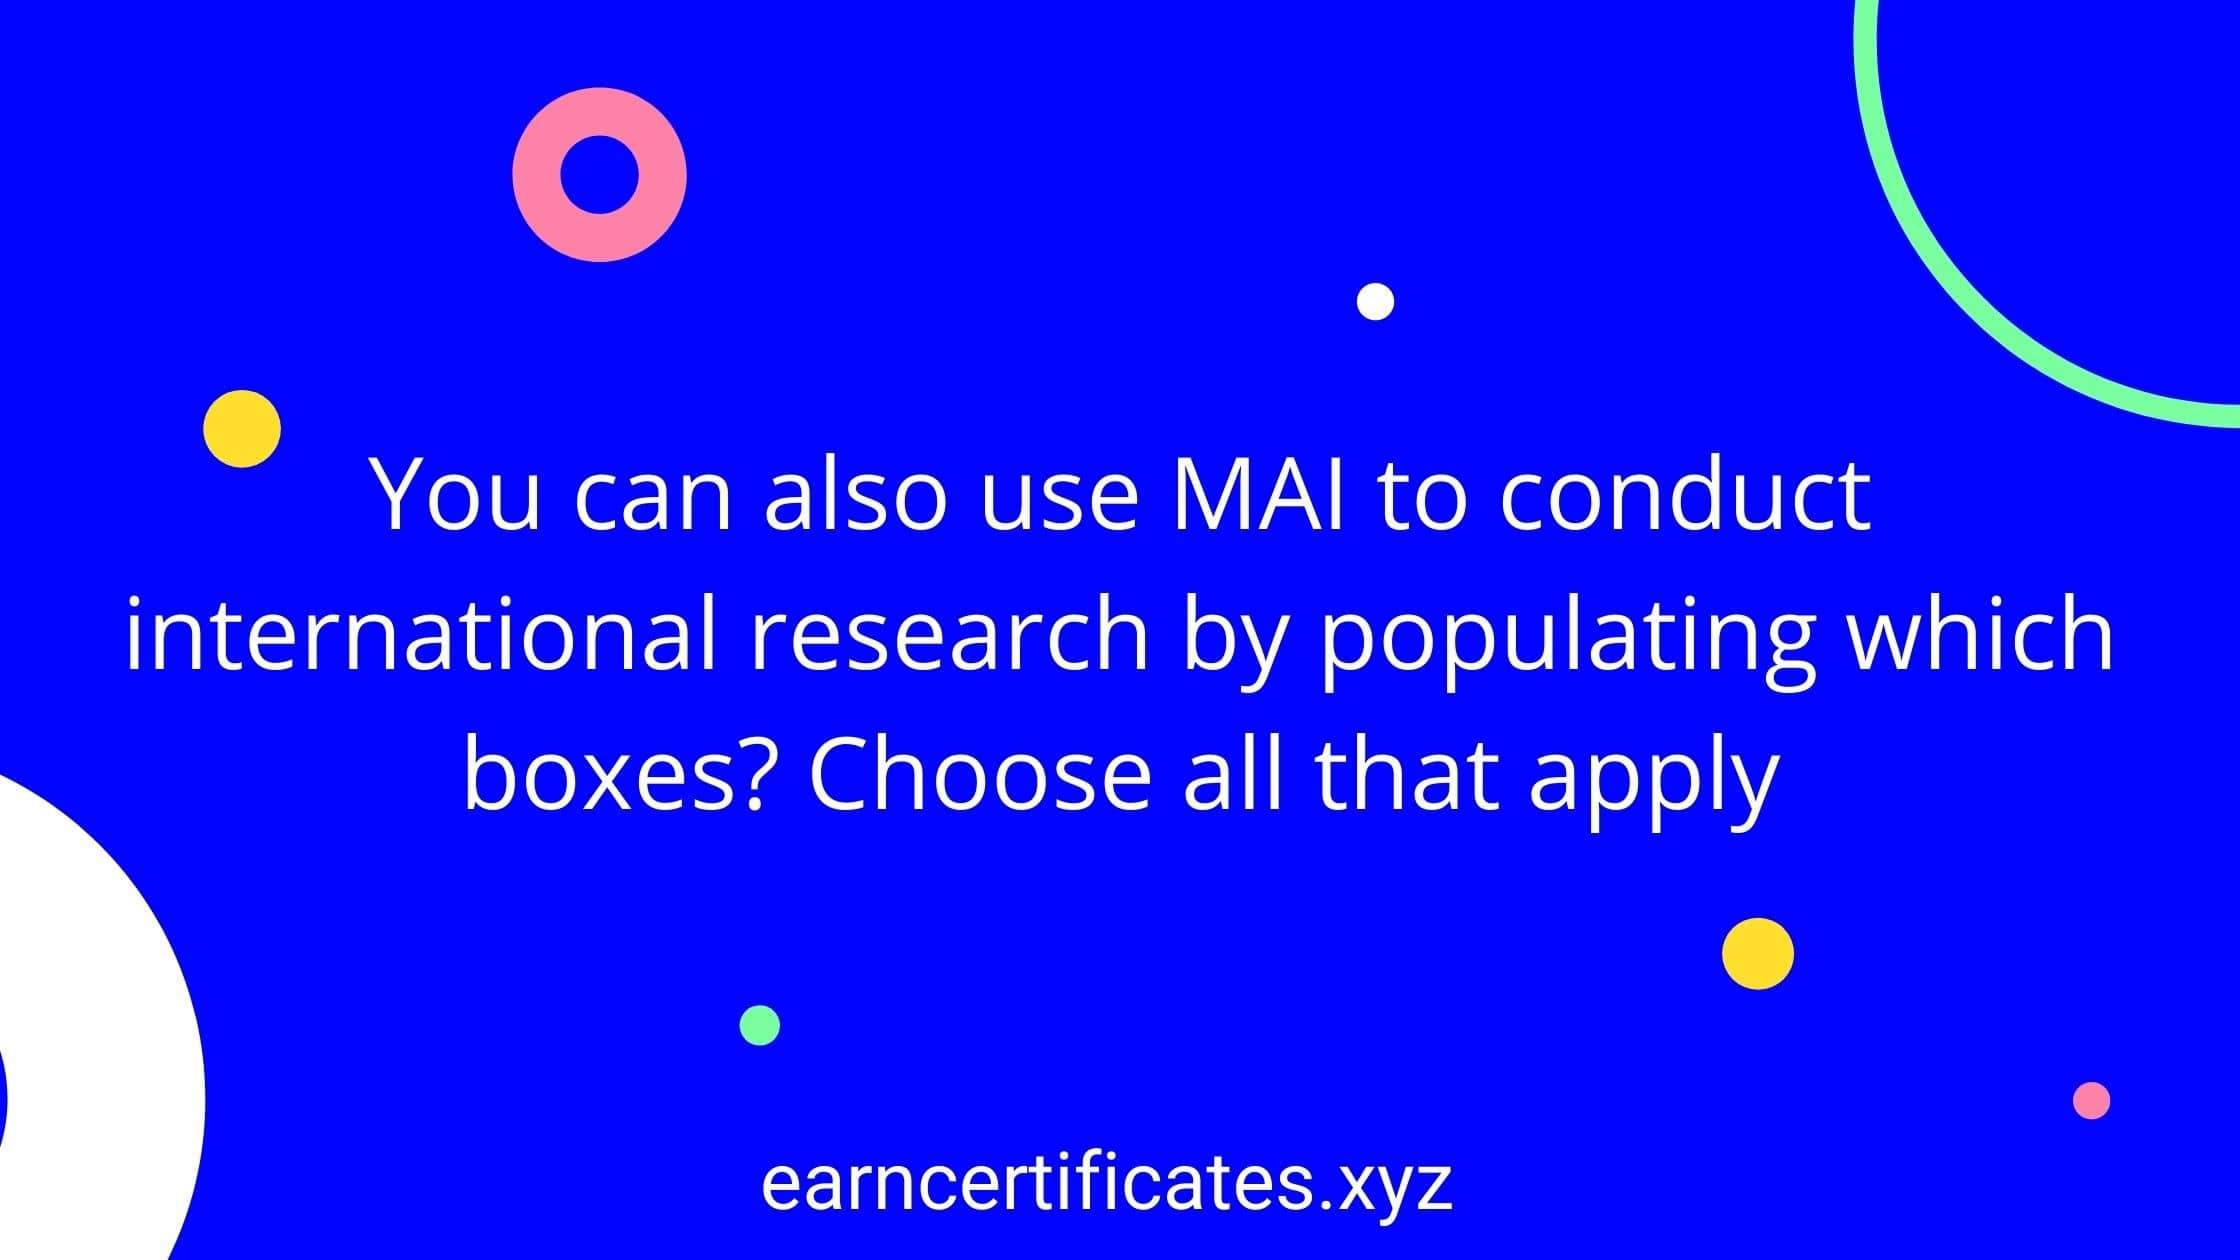 You can also use MAI to conduct international research by populating which boxes? Choose all that apply